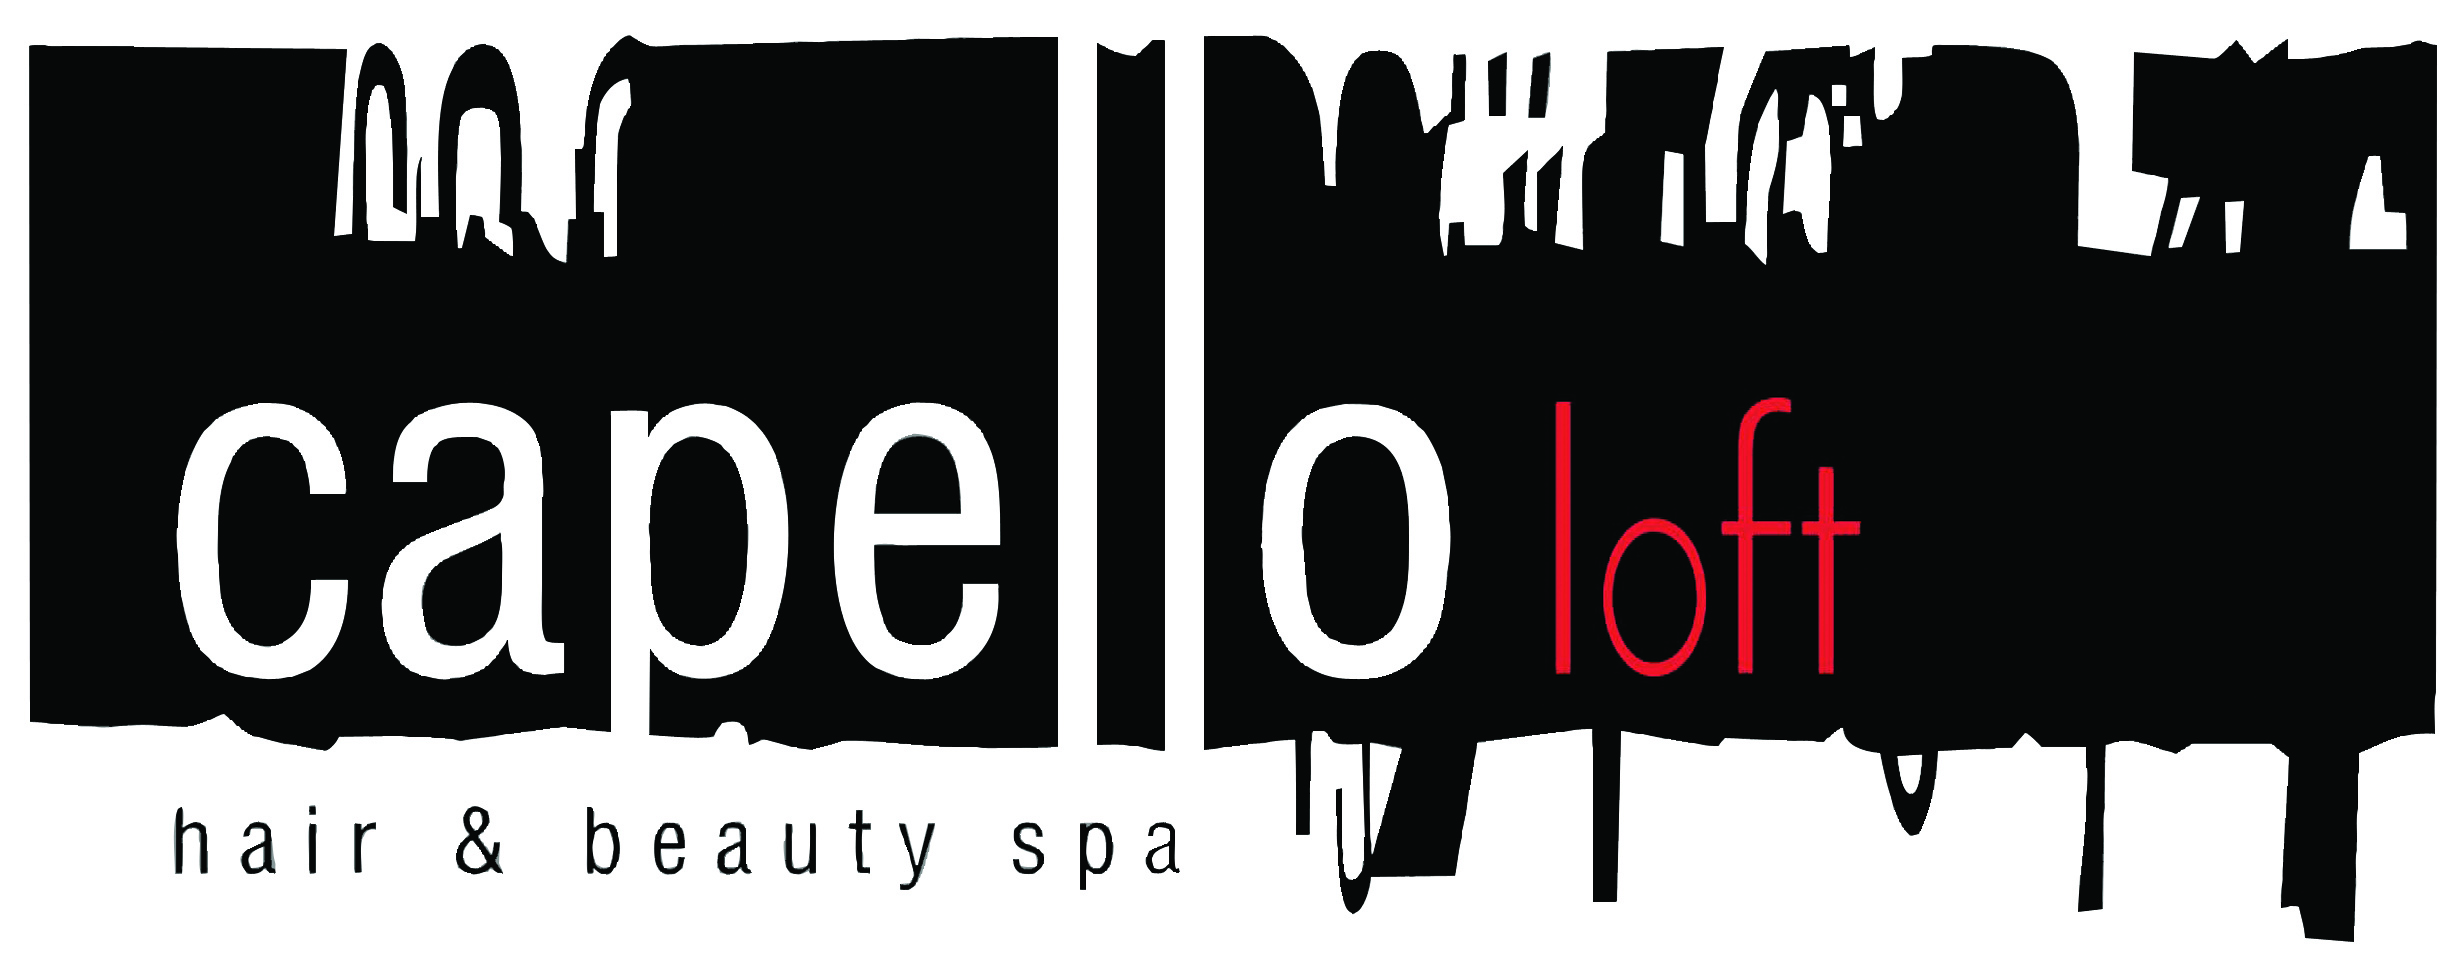 Capello Loft Hair & Beauty Spa